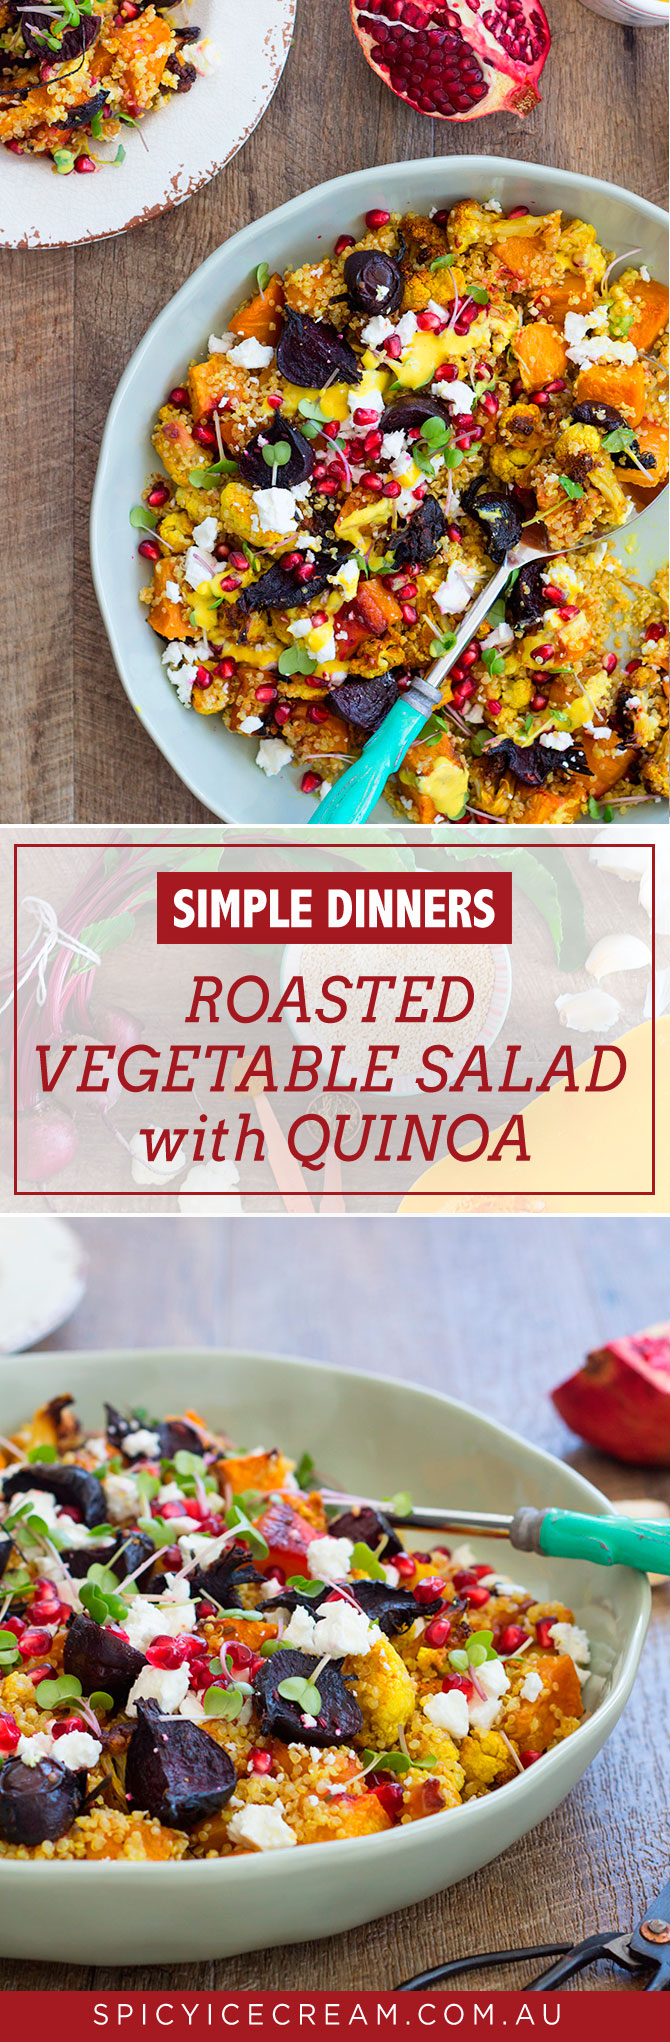 Roasted Vegetable Salad with Quinoa